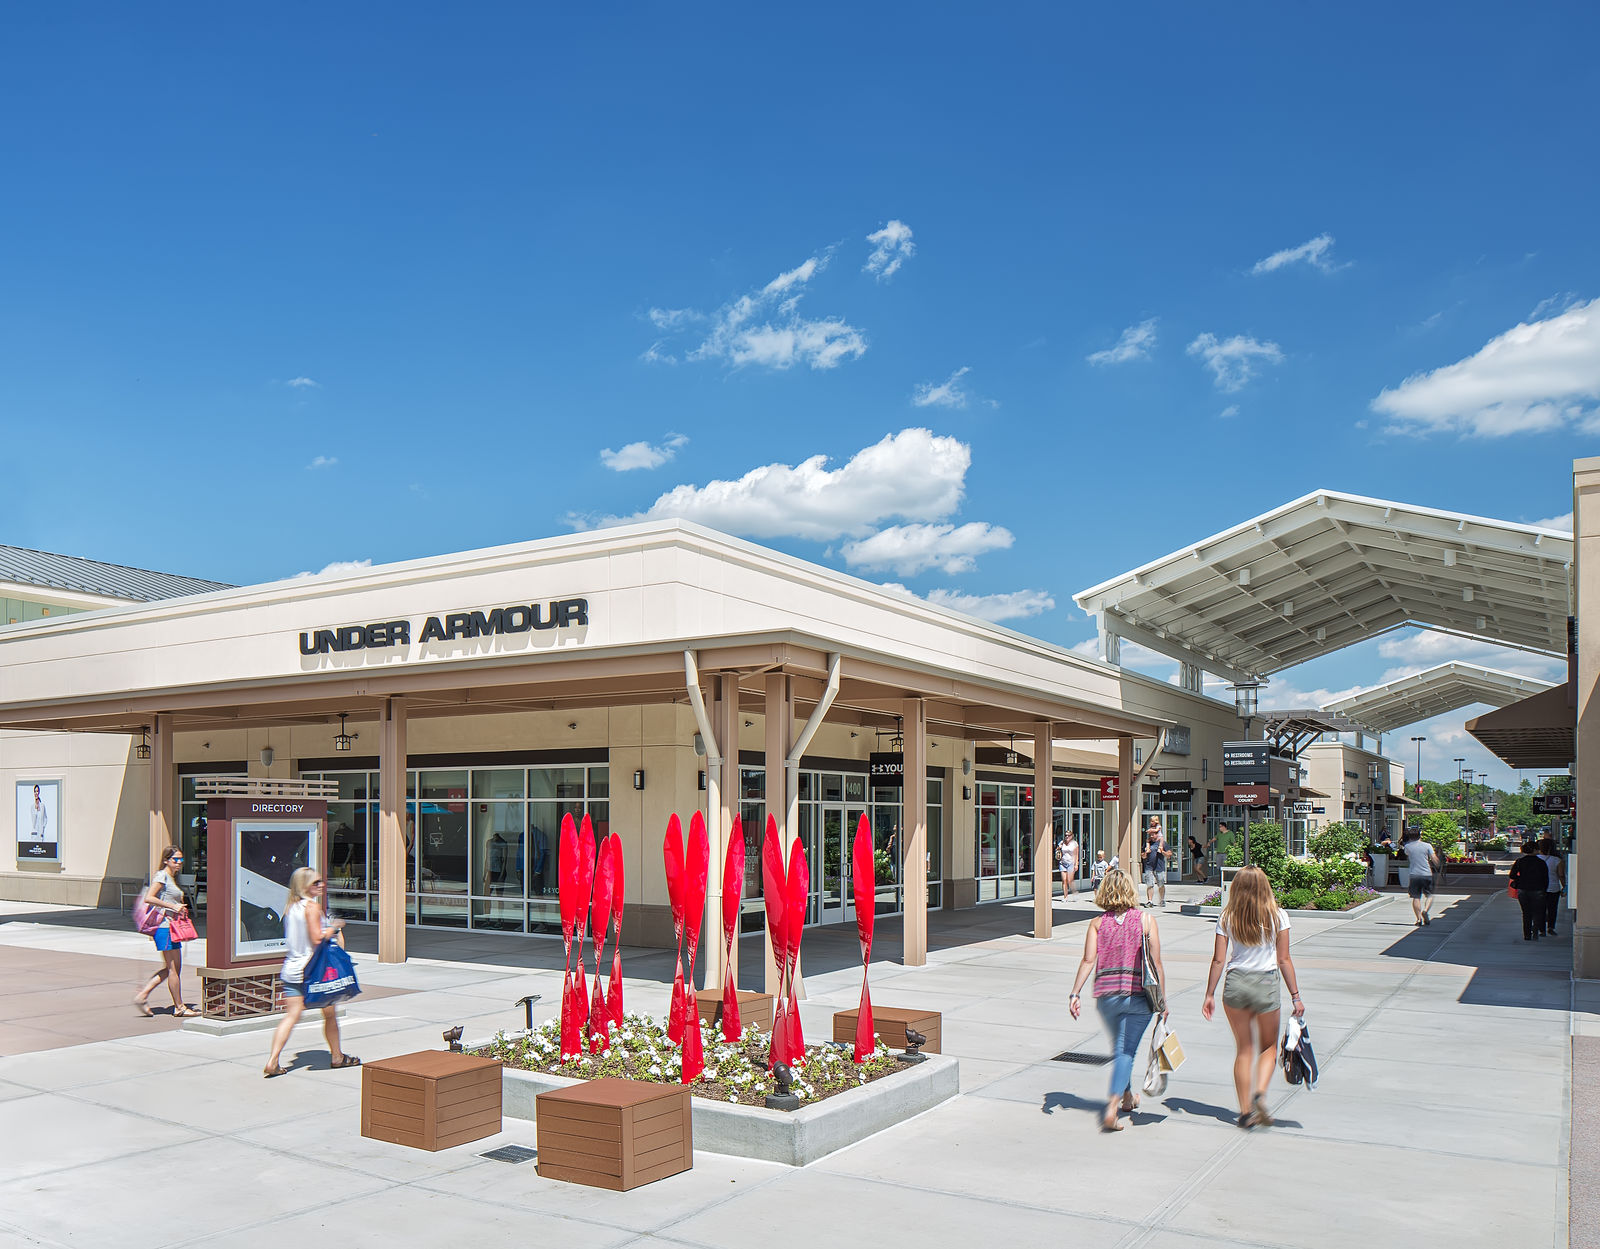 Chicago Premium Outlets, an outdoor center located 40 minutes from downtown Chicago, has over stores such as Adidas, Coach, Nike, kate spade new york, Movado Company Store, Saks Fifth Avenue Off 5th, Tommy Hilfiger, Vera Bradley, Restoration Hardware and more.9/10(6).